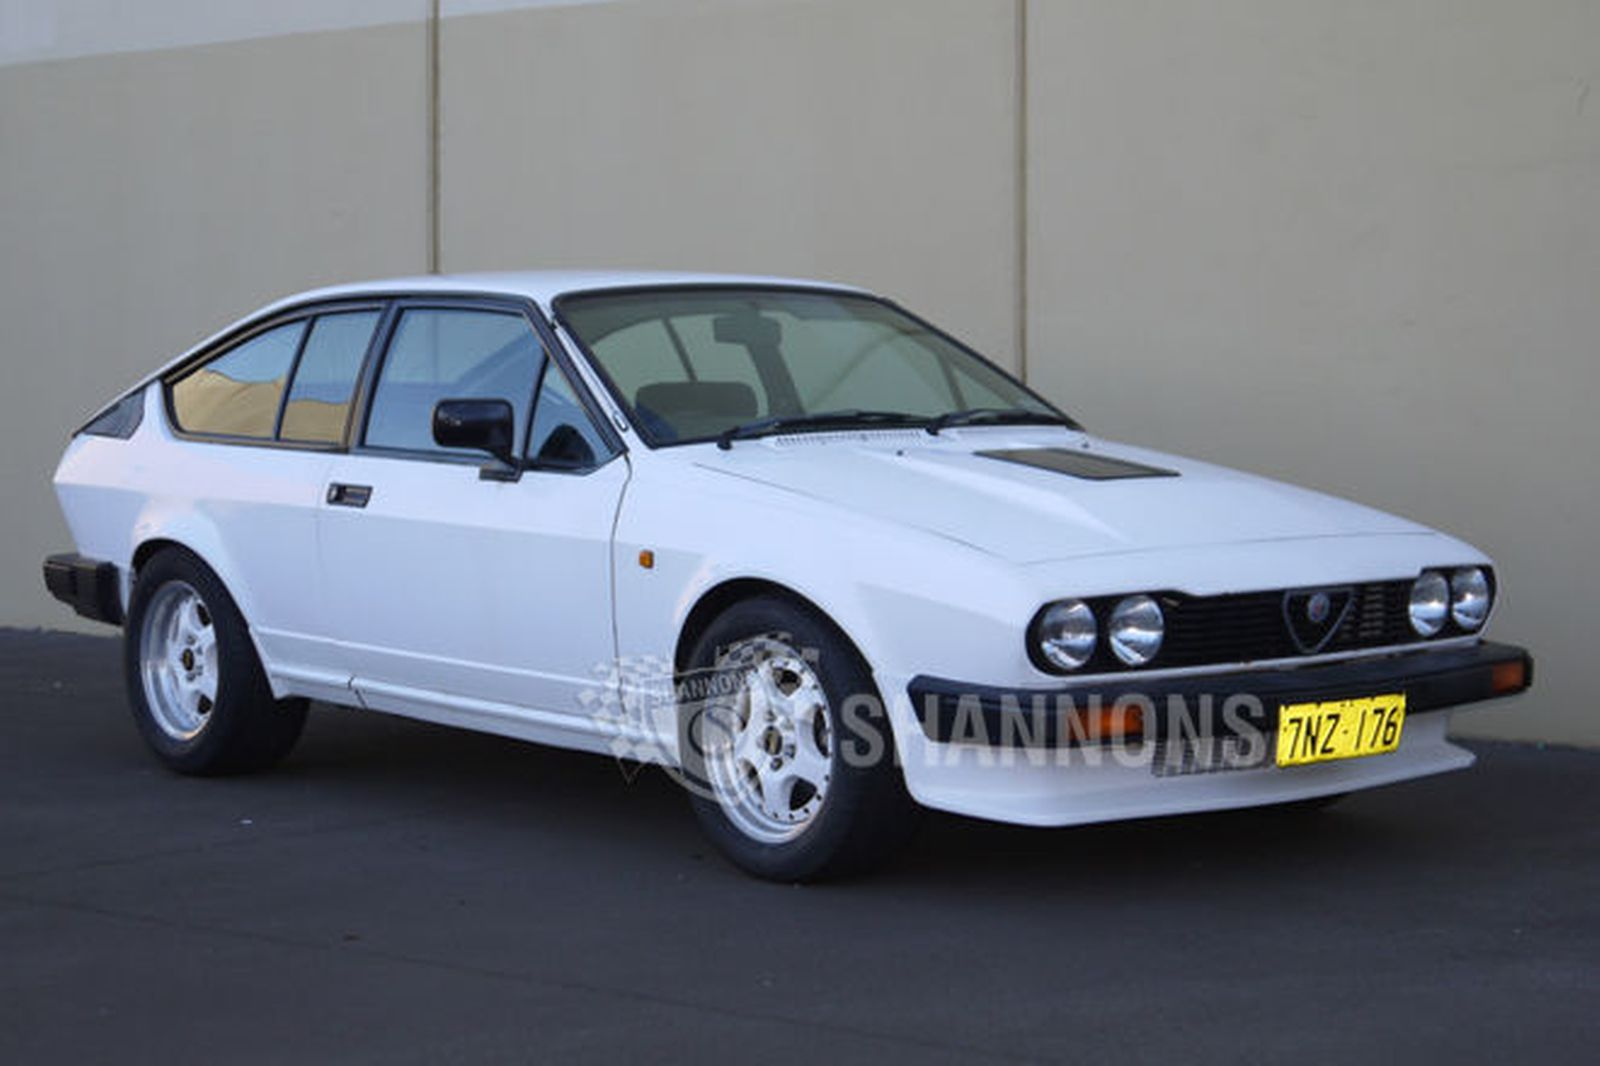 https://www.shannons.com.au/library/images/auctions/Q6R4F8F4C2Z5S5U8/1600x1066/1983-alfa-romeo-gtv6-coupe.jpg